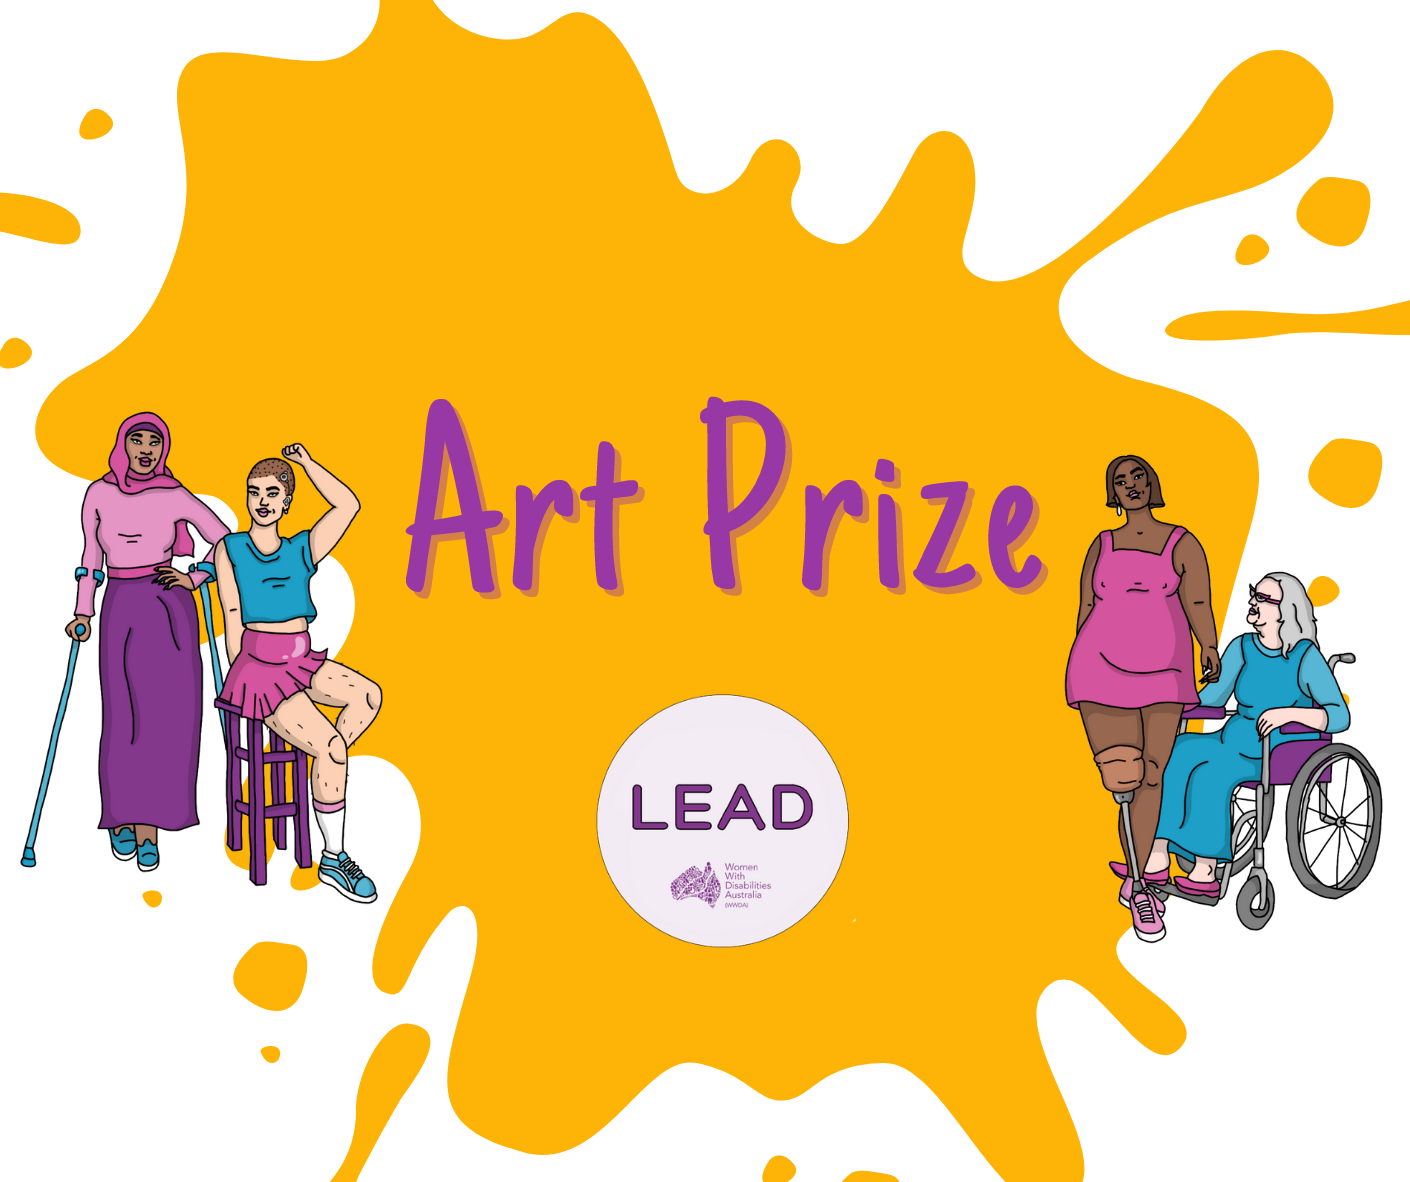 Splatter of orange paint against a white background with WWDA LEAD logo over the top: White background with an illustration of four women representing diversity and disability. In the middle in a purple circle reads LEAD, Lead, Engage, Activate and drive.